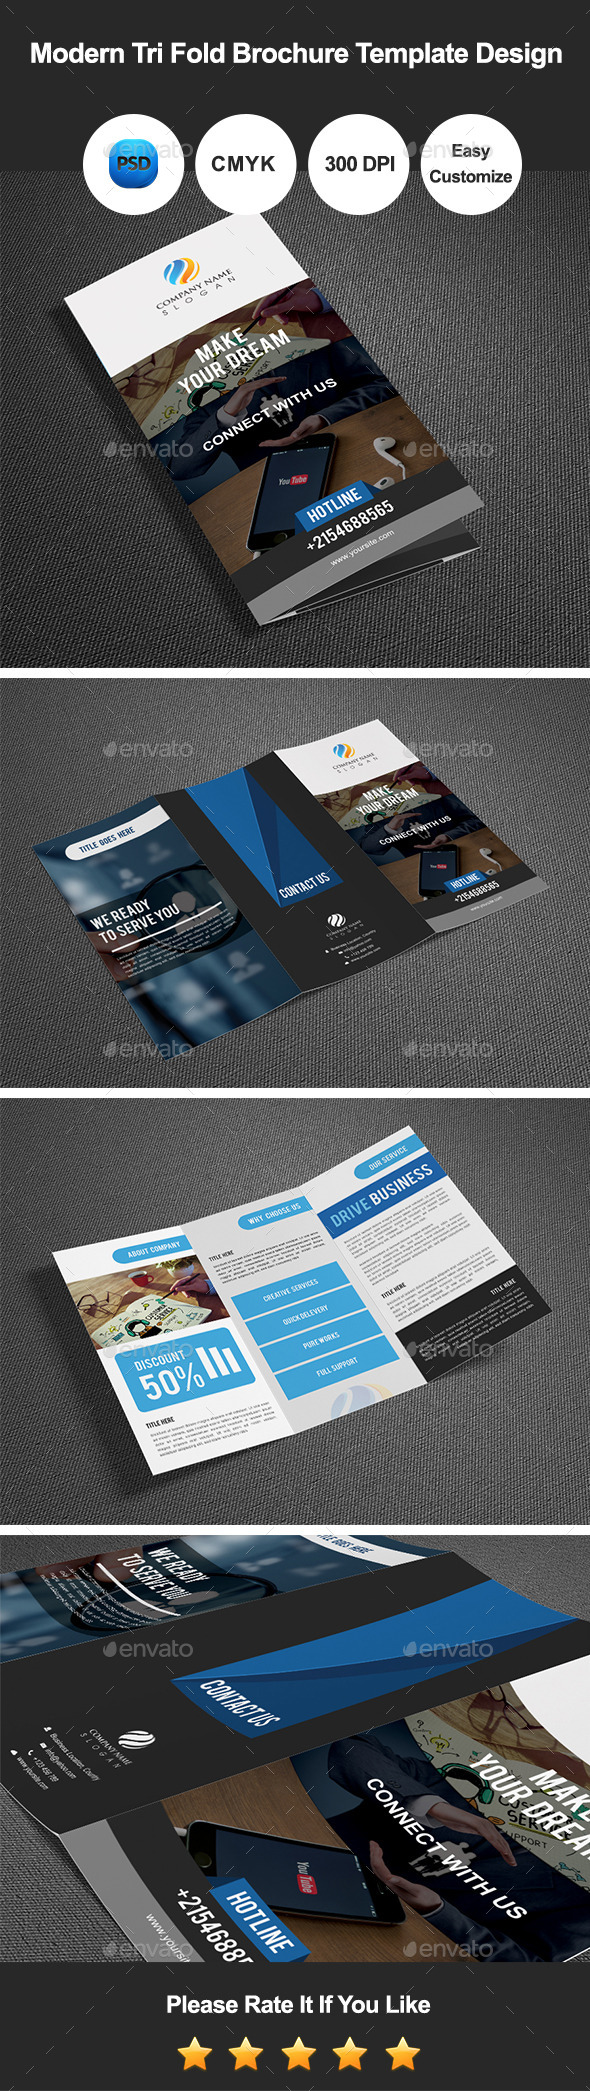 GraphicRiver Modern Tri Fold Brochure Template Design 10942983